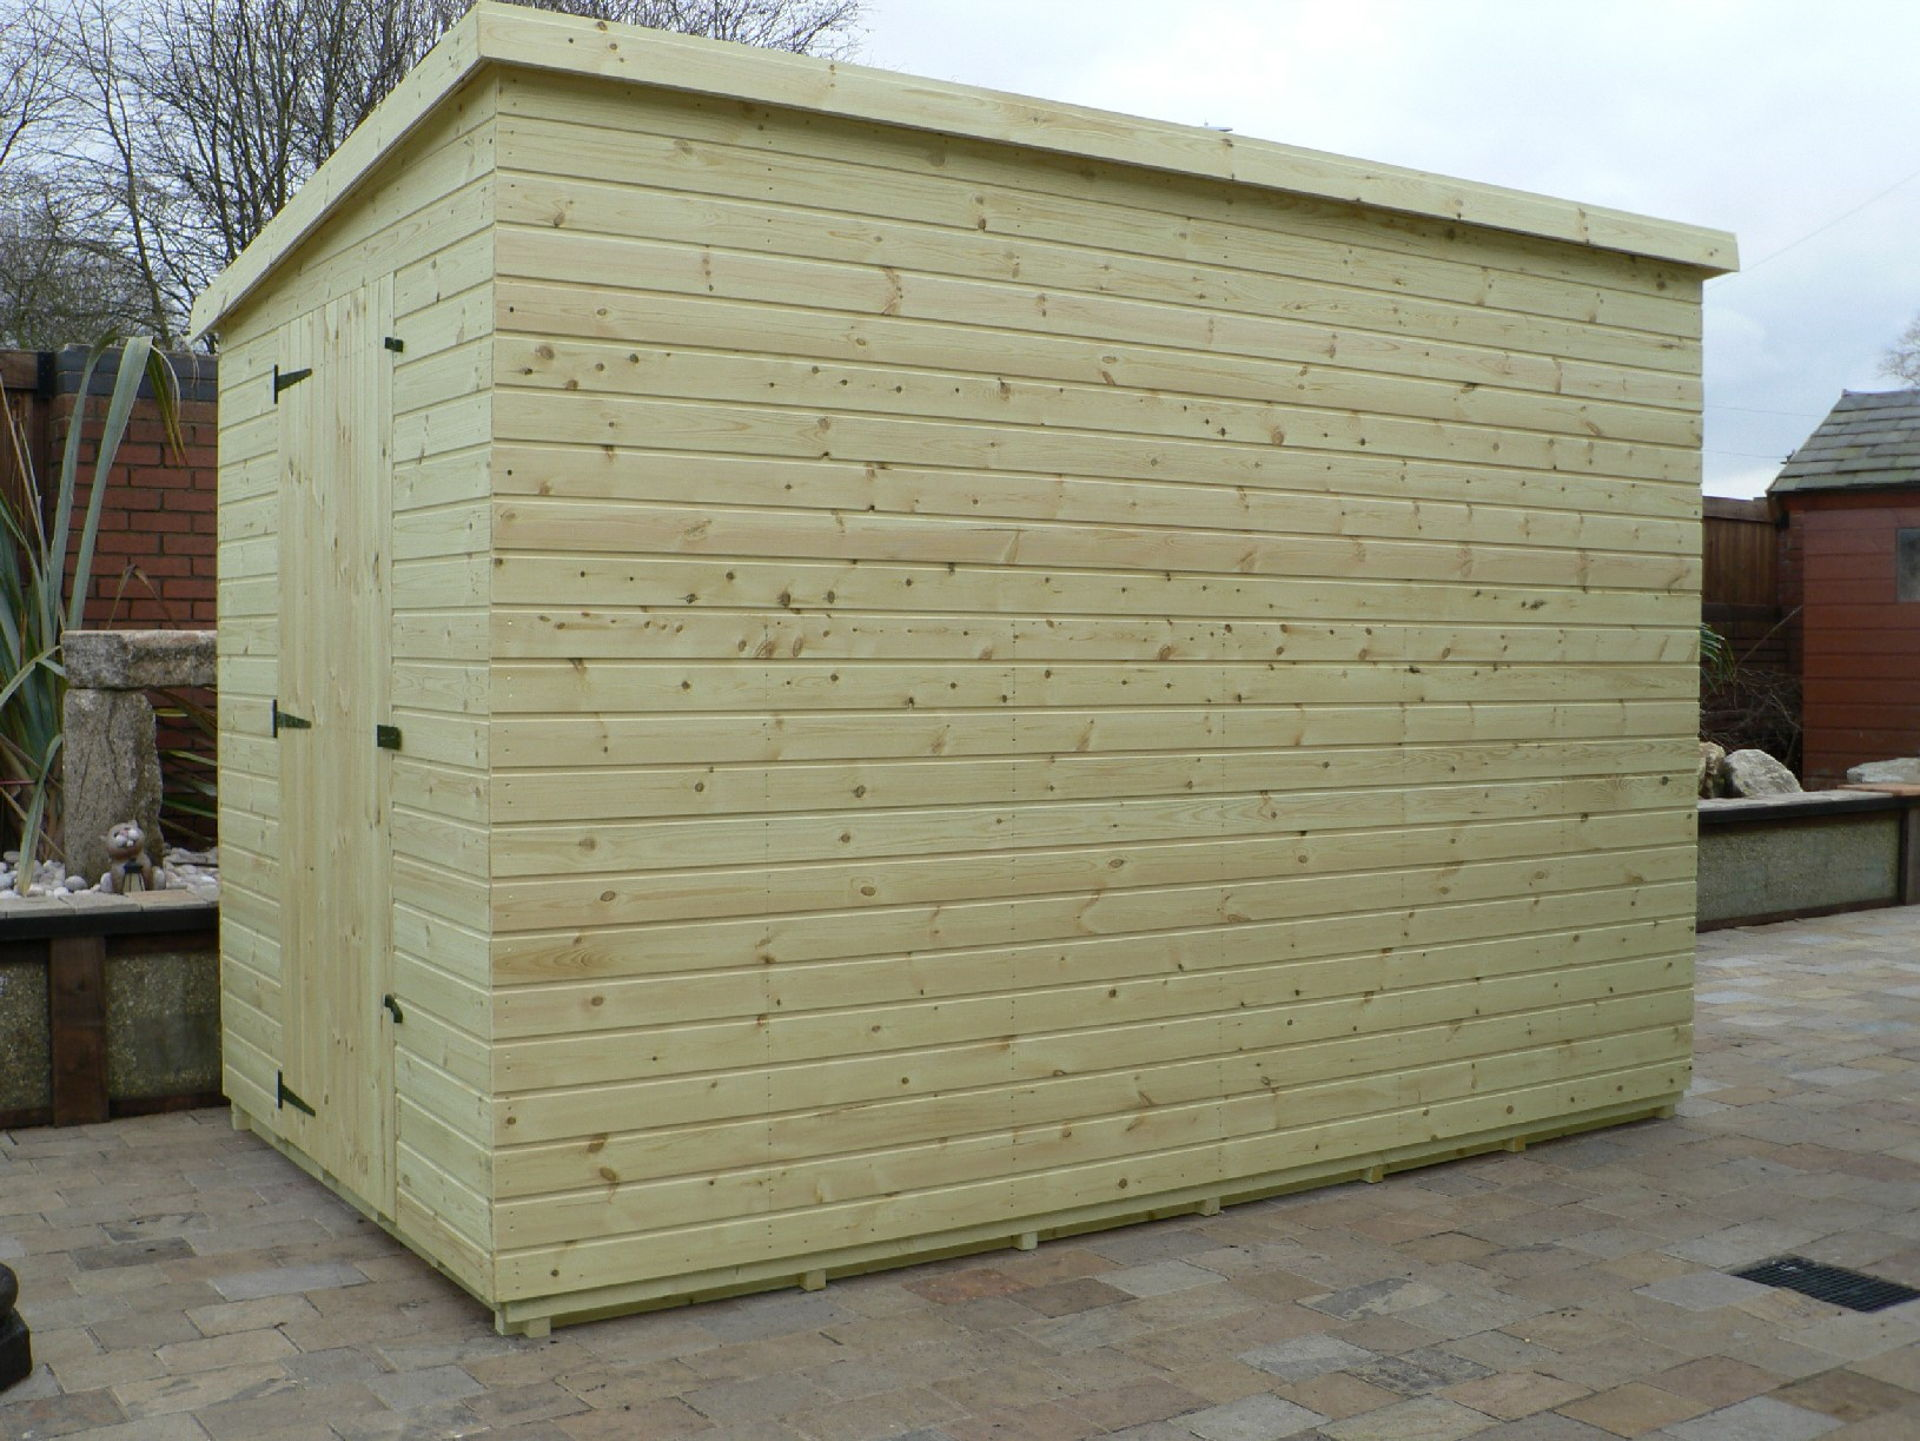 Sheds Manchester - Pressure Treated 10' x 6' Pent Shed . Door On The Left Gable End Panel. No Windows